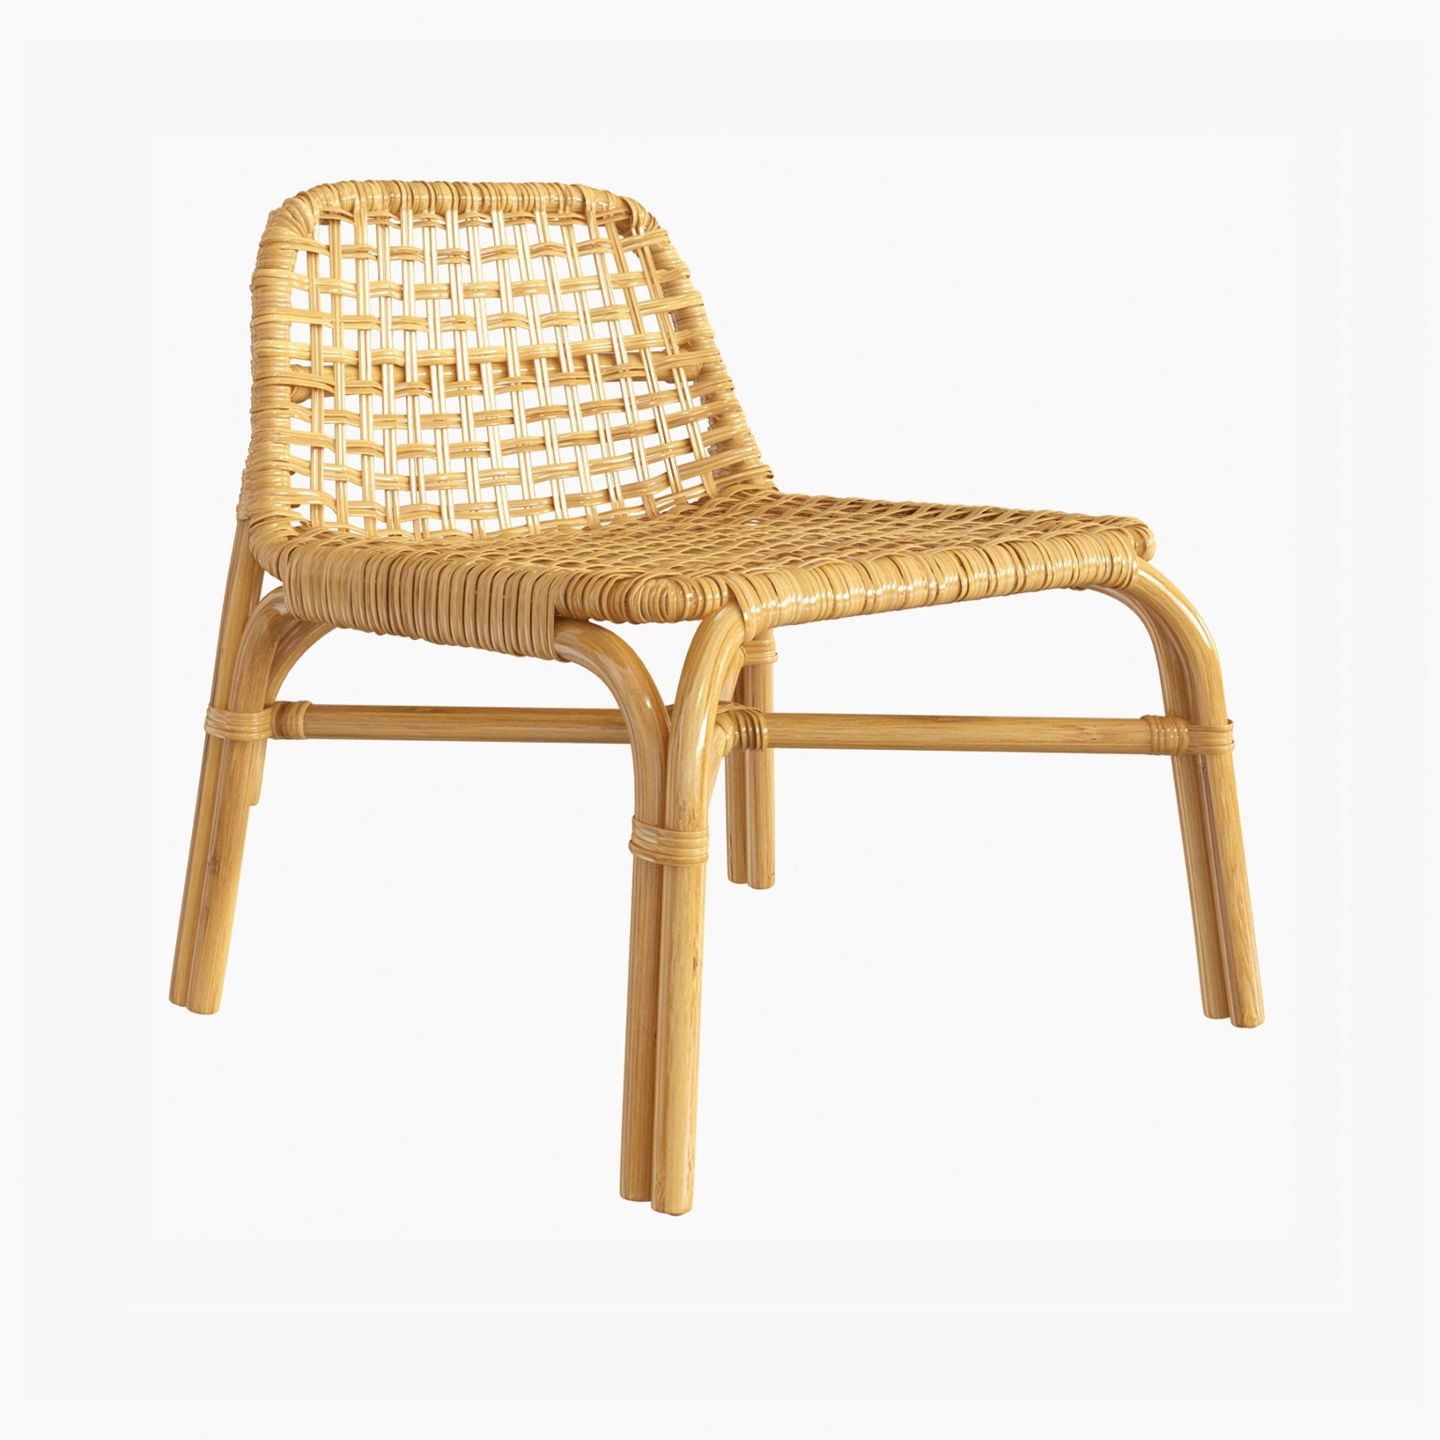 Awesome Ikea Tankvard Bamboo Rattan Chair 3D Model Gmtry Best Dining Table And Chair Ideas Images Gmtryco